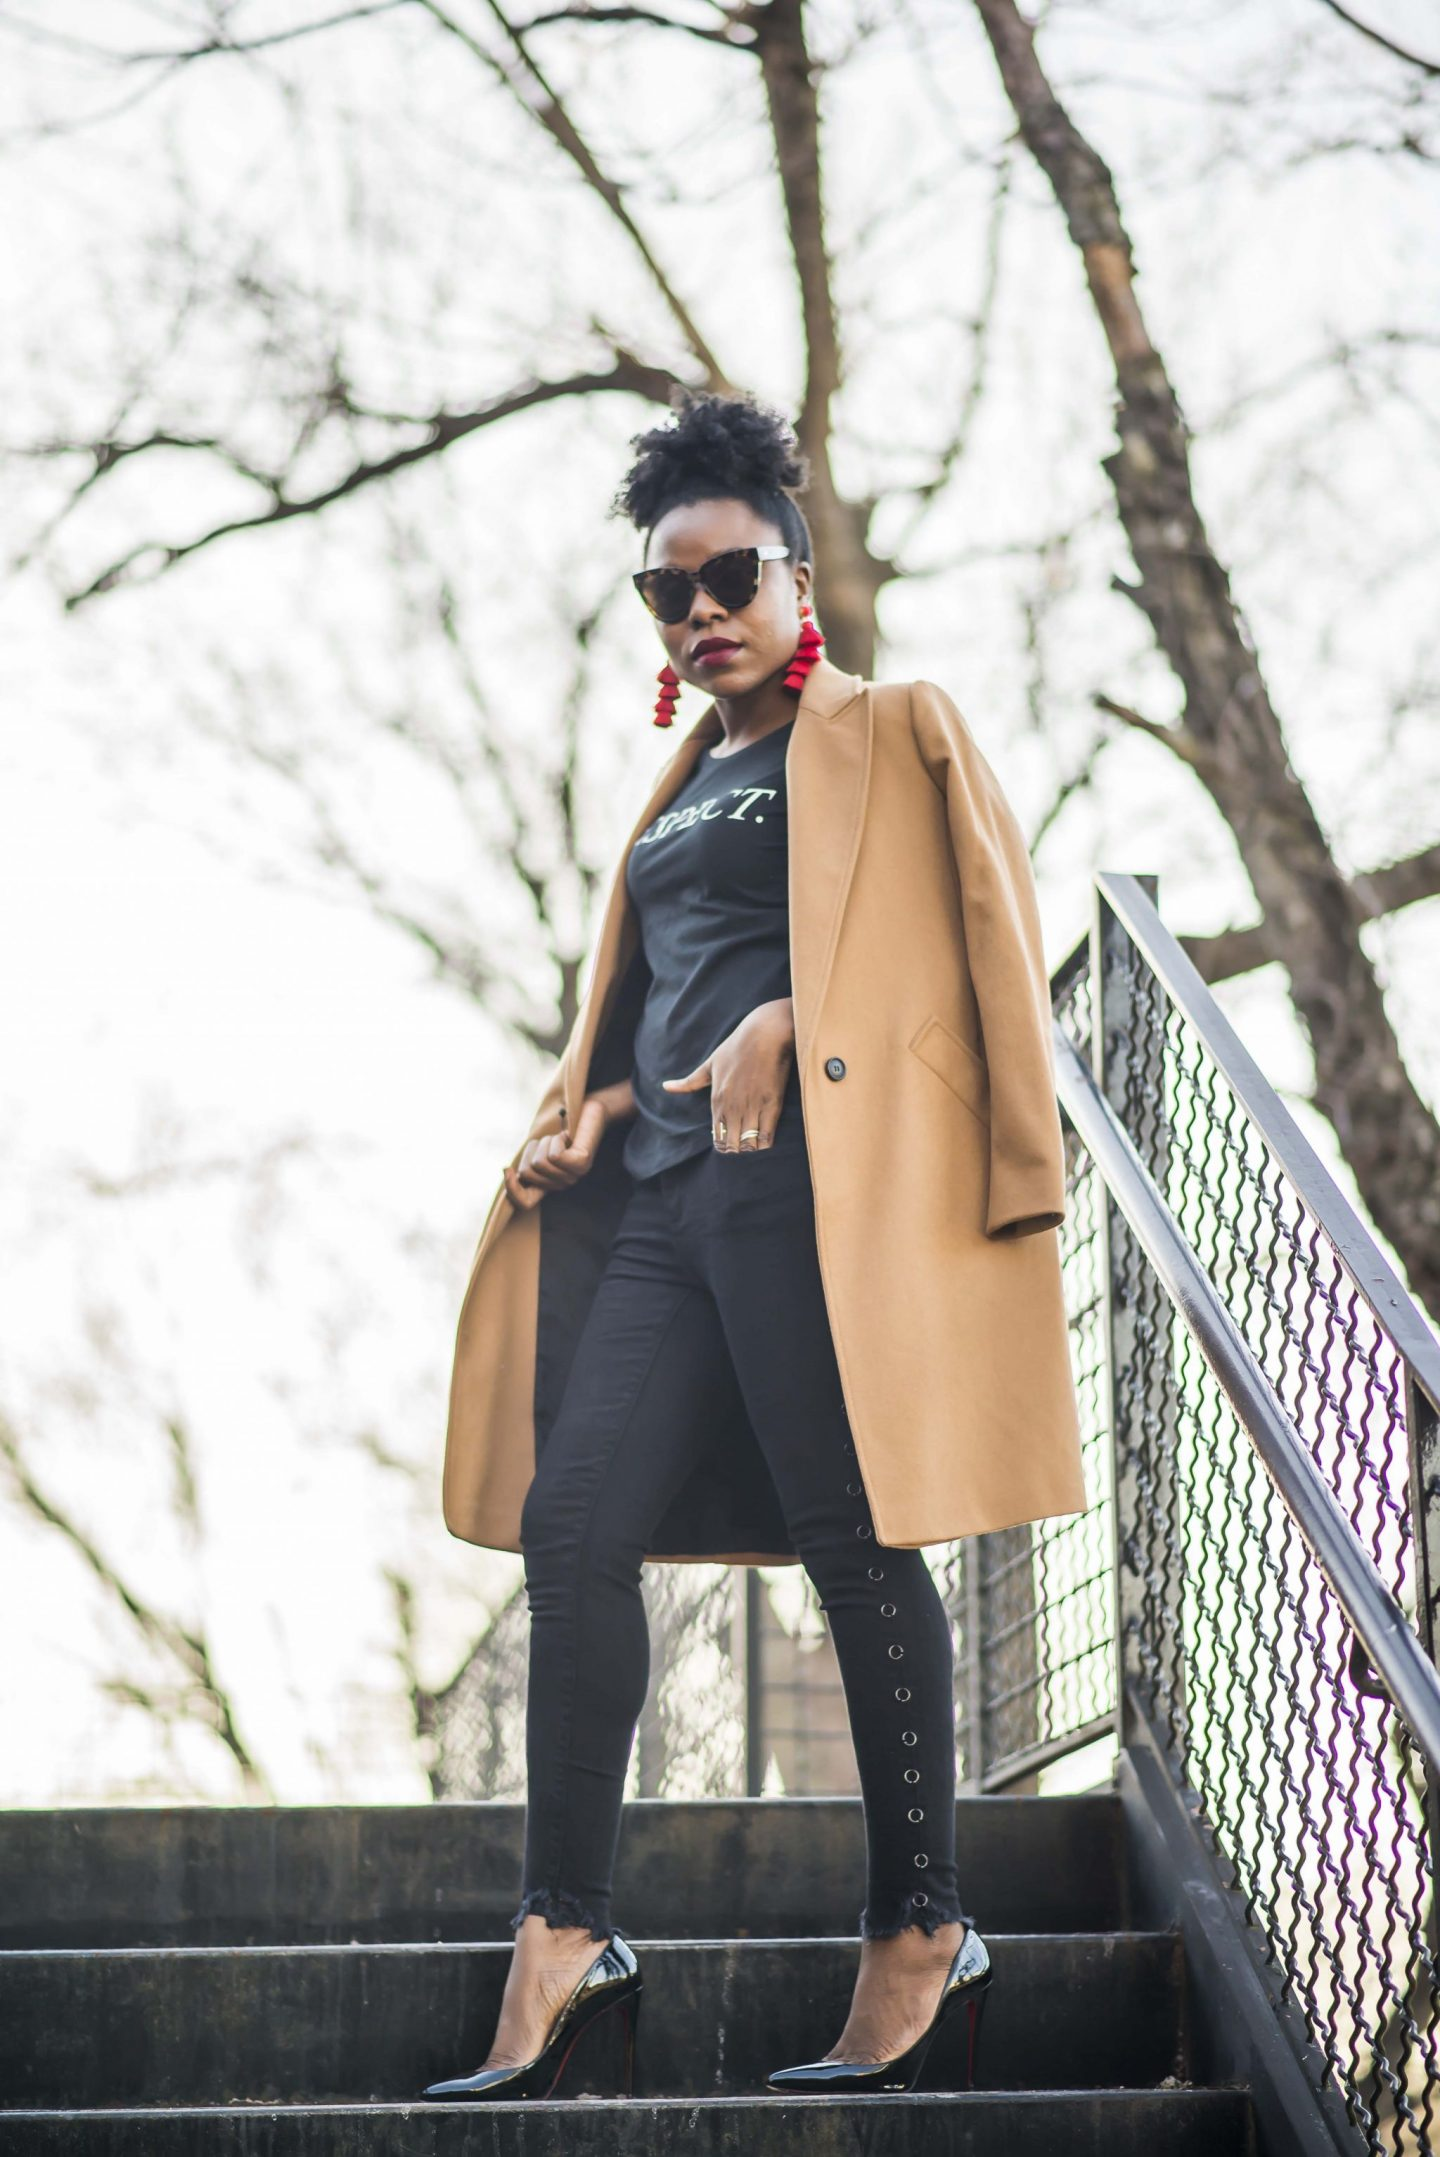 HOW TO EFFORTLESSLY STYLE A WINTER CASUAL LOOK